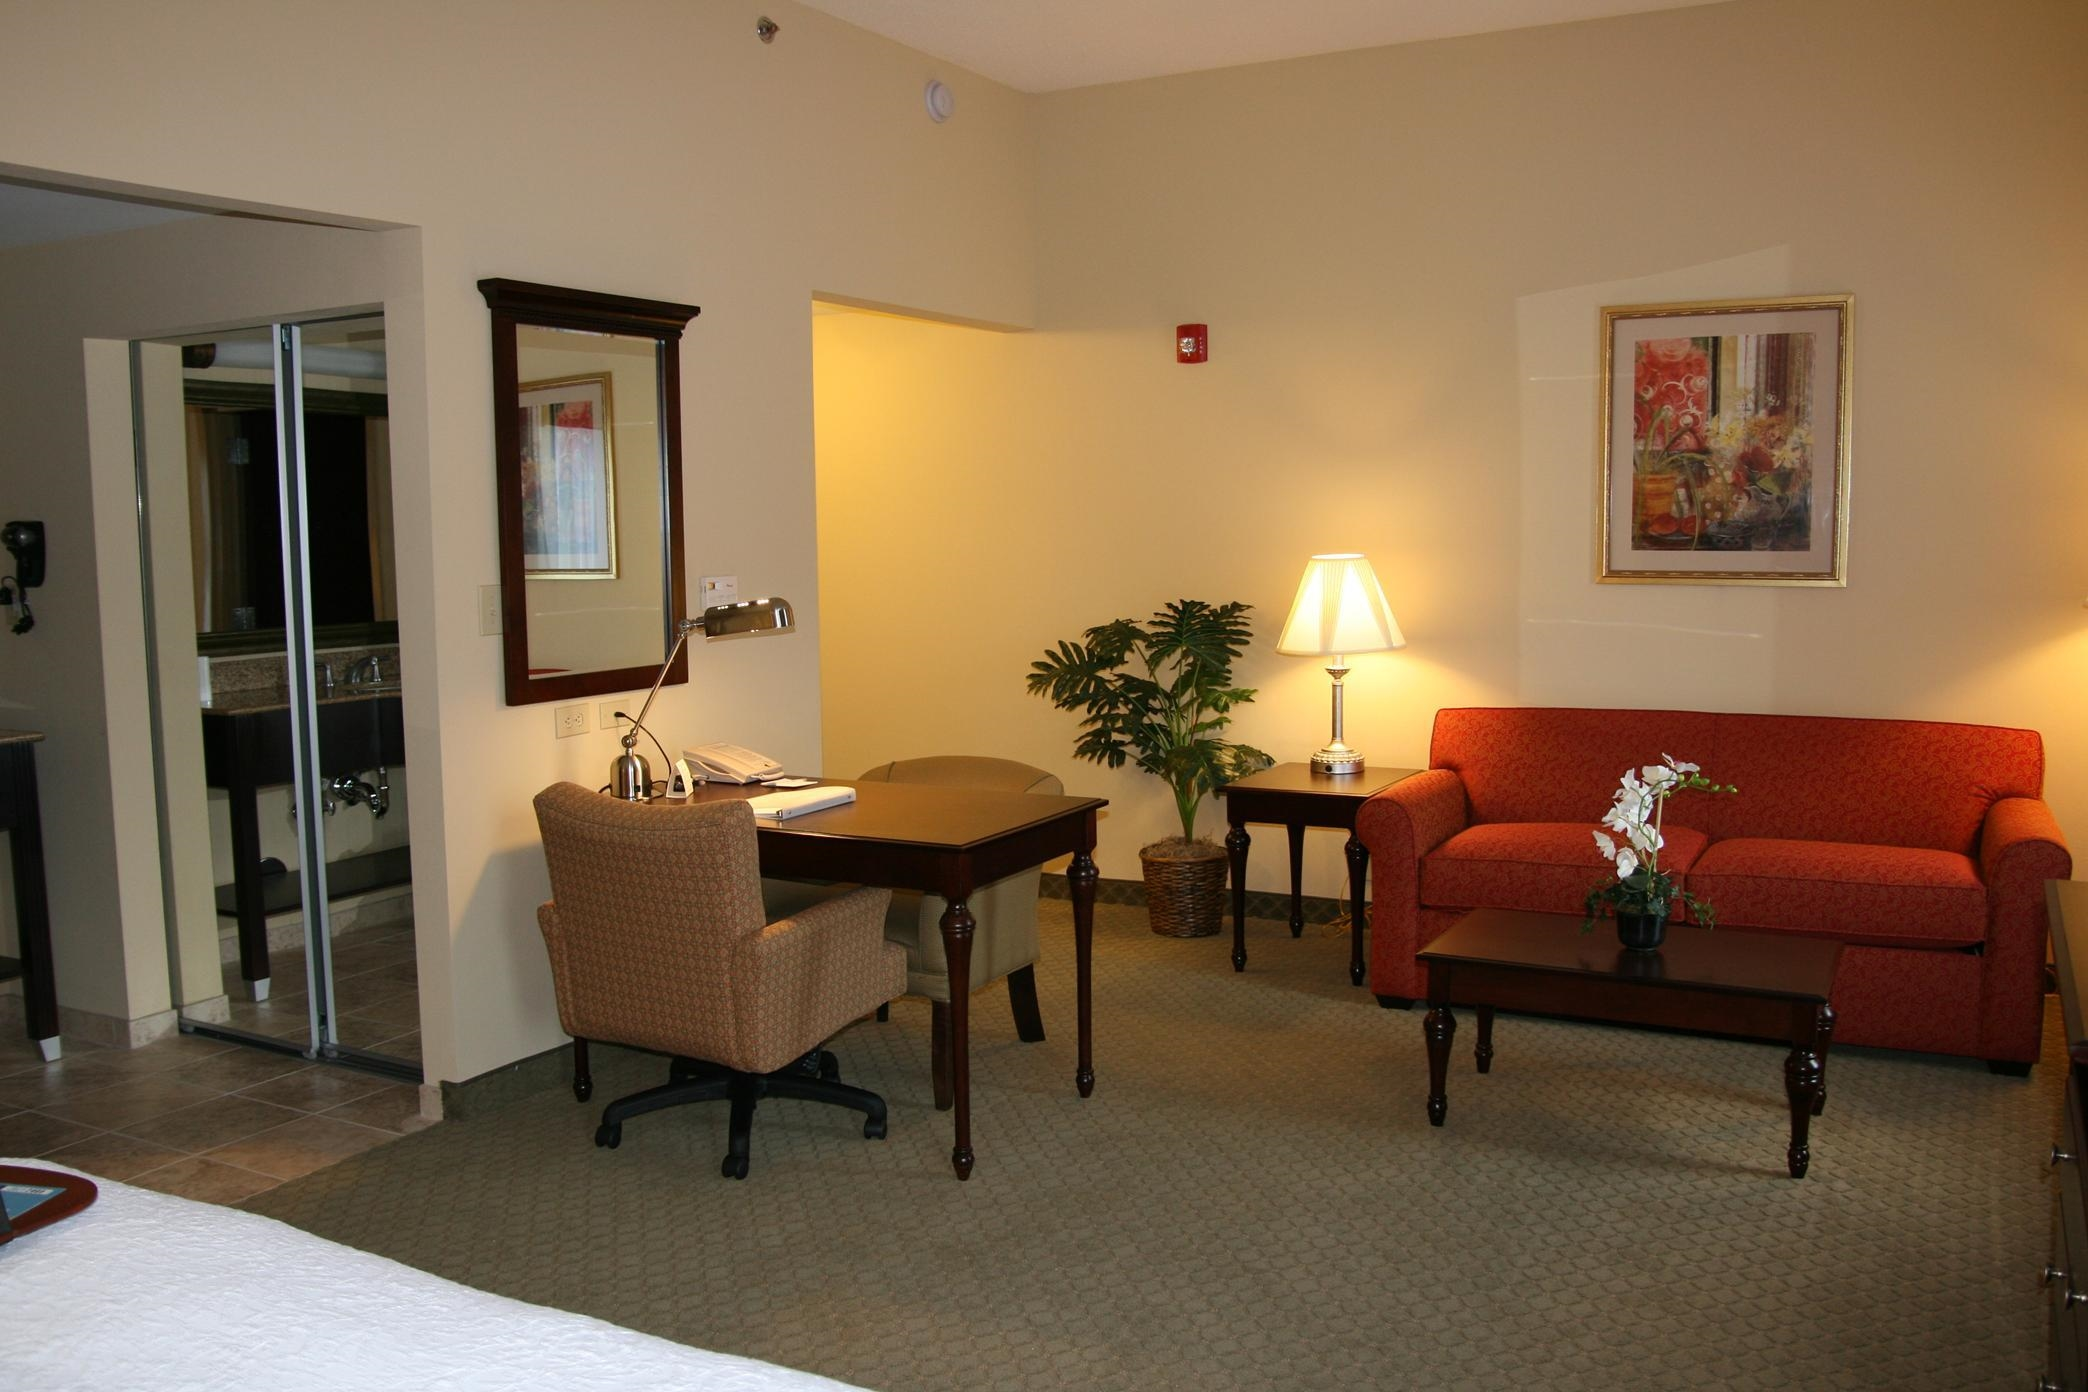 Hampton Inn & Suites Huntsville Hampton Cove image 15